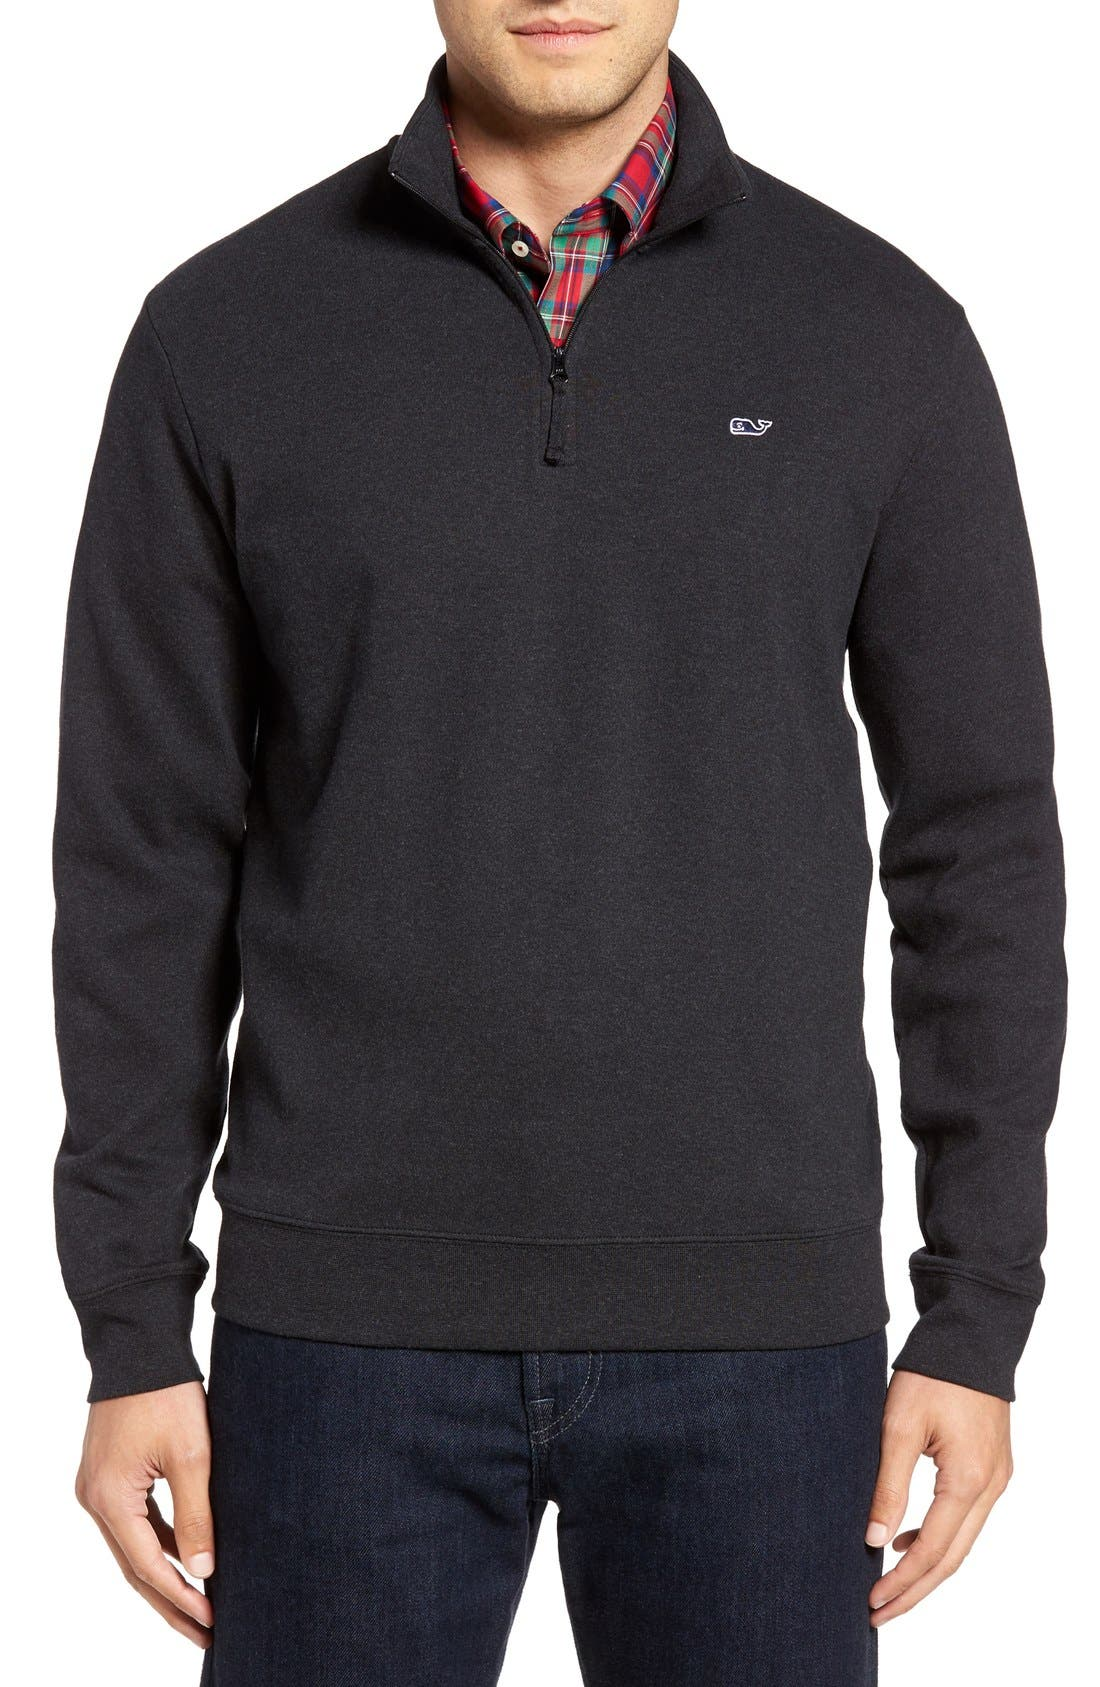 Main Image - Vineyard Vines Quarter Zip Sweater